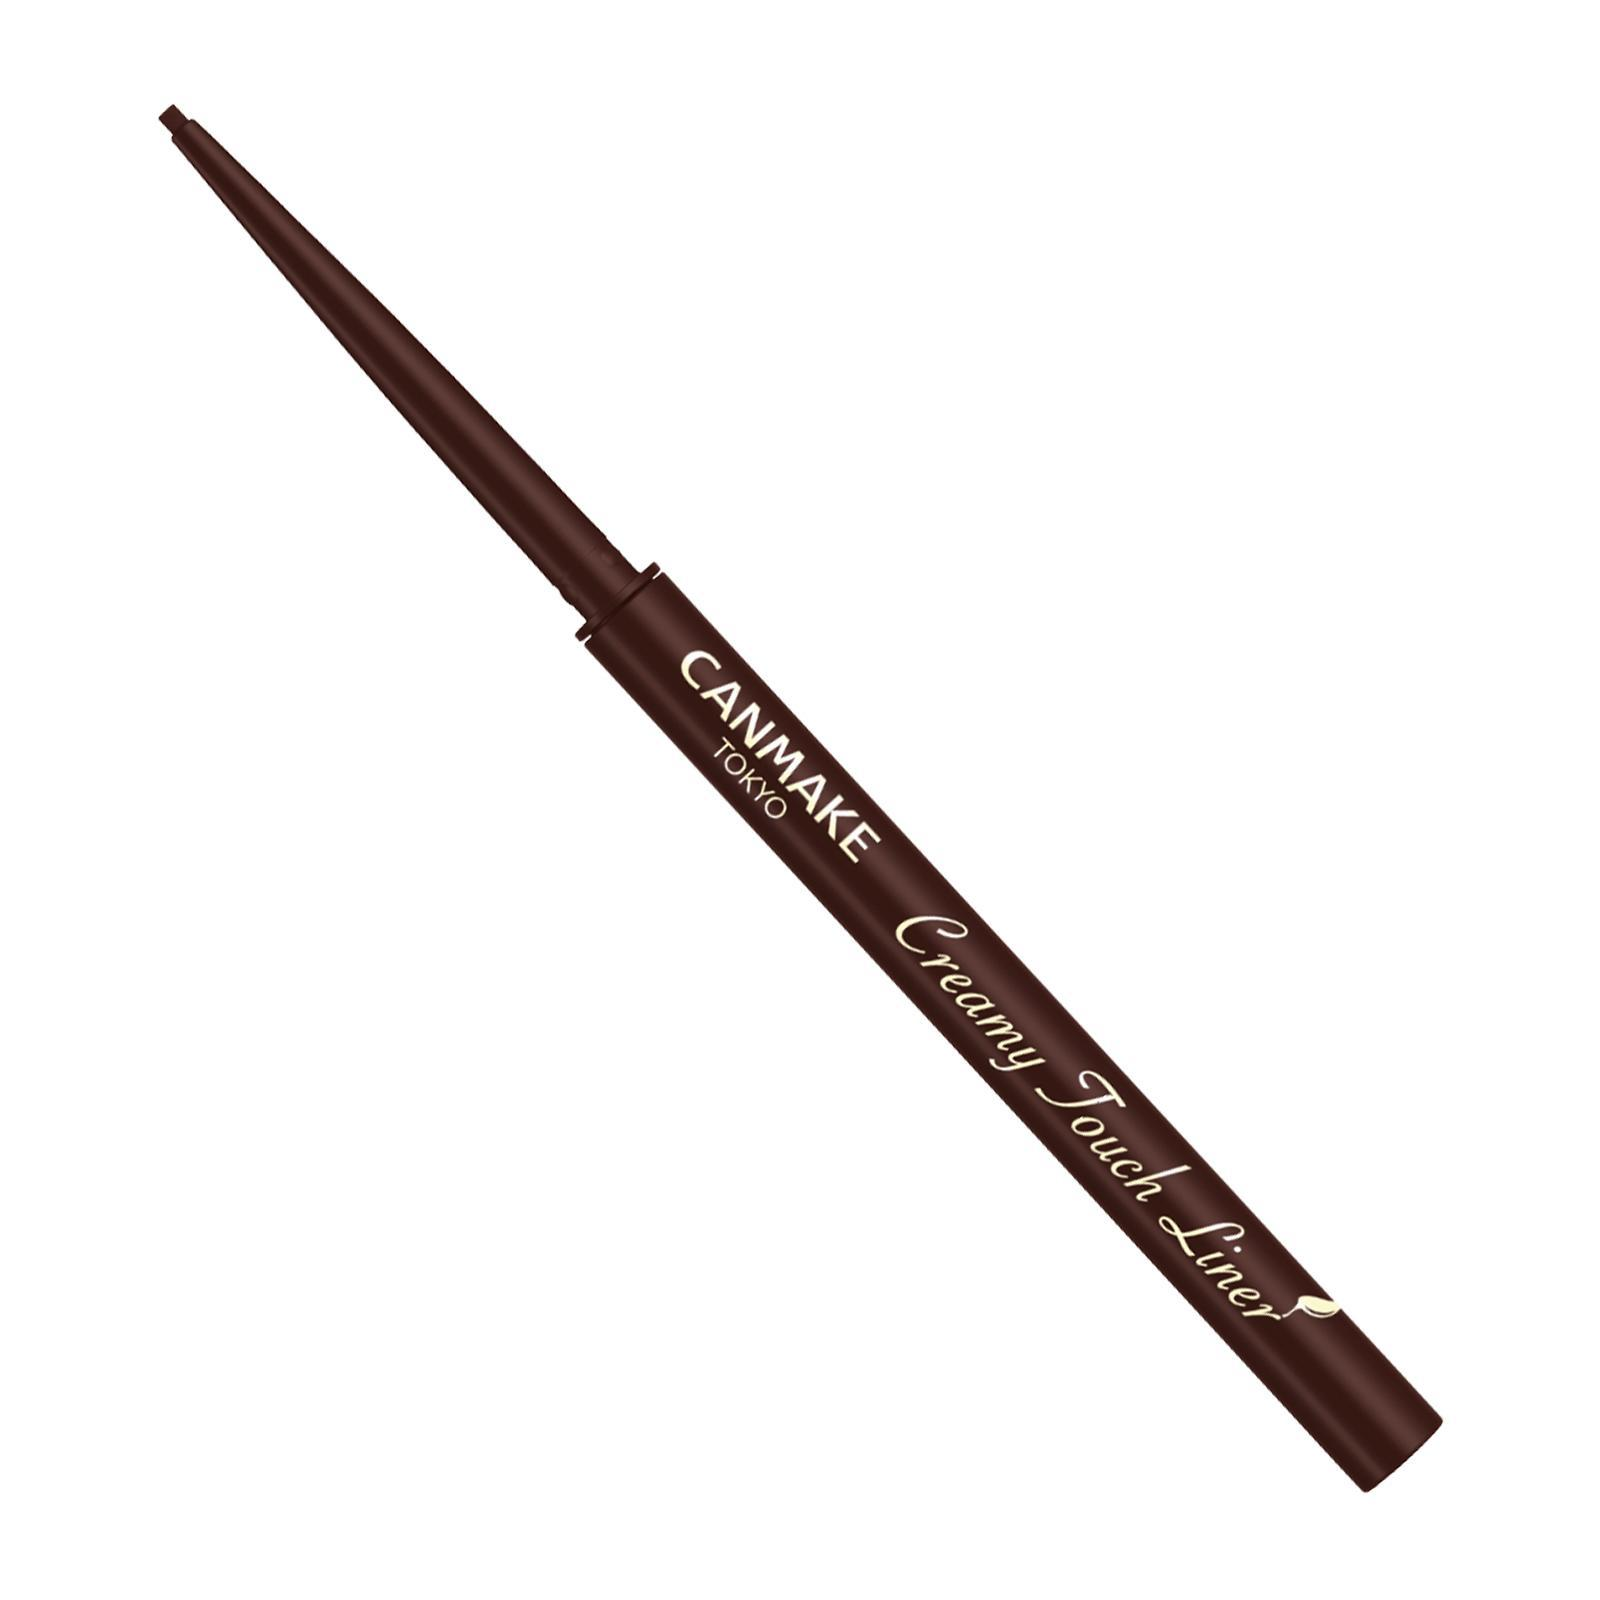 Canmake Creamy Touch Liner [03]Dark Brown